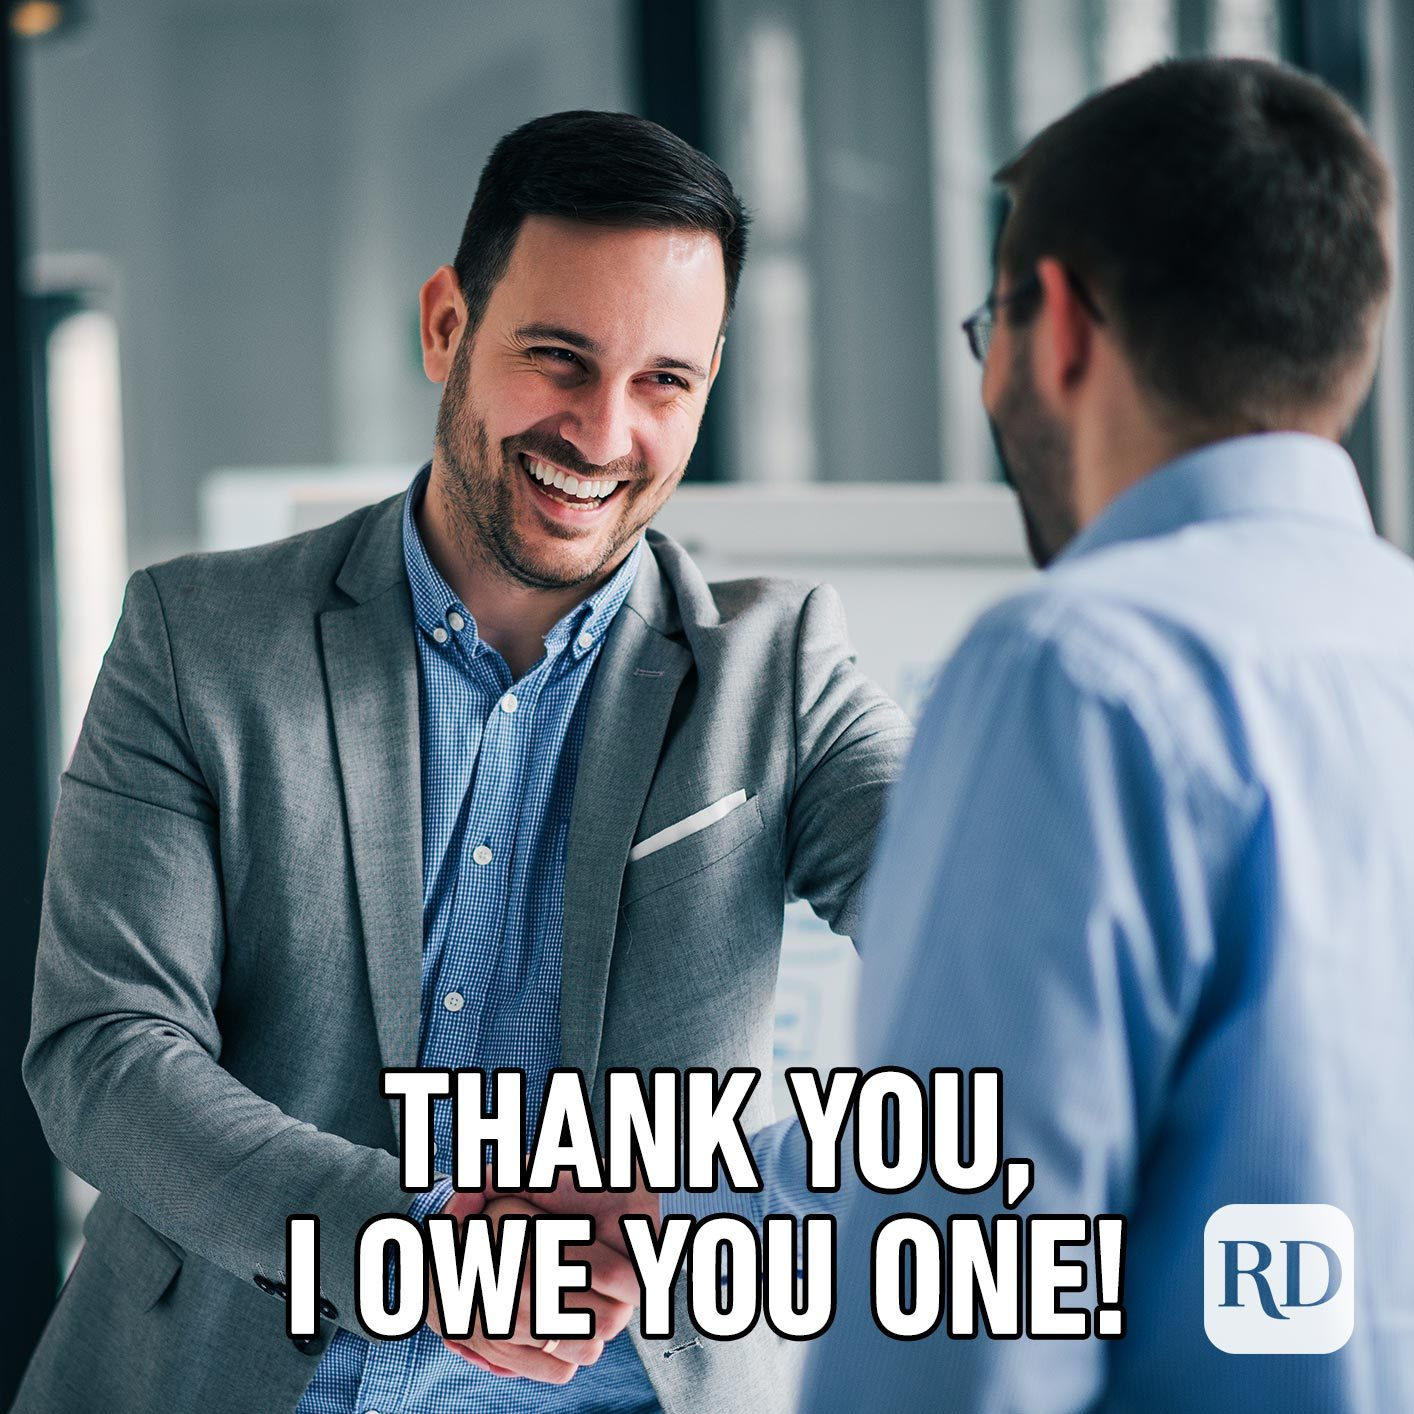 Men shaking hands. Meme text: Thank you, I owe you one!